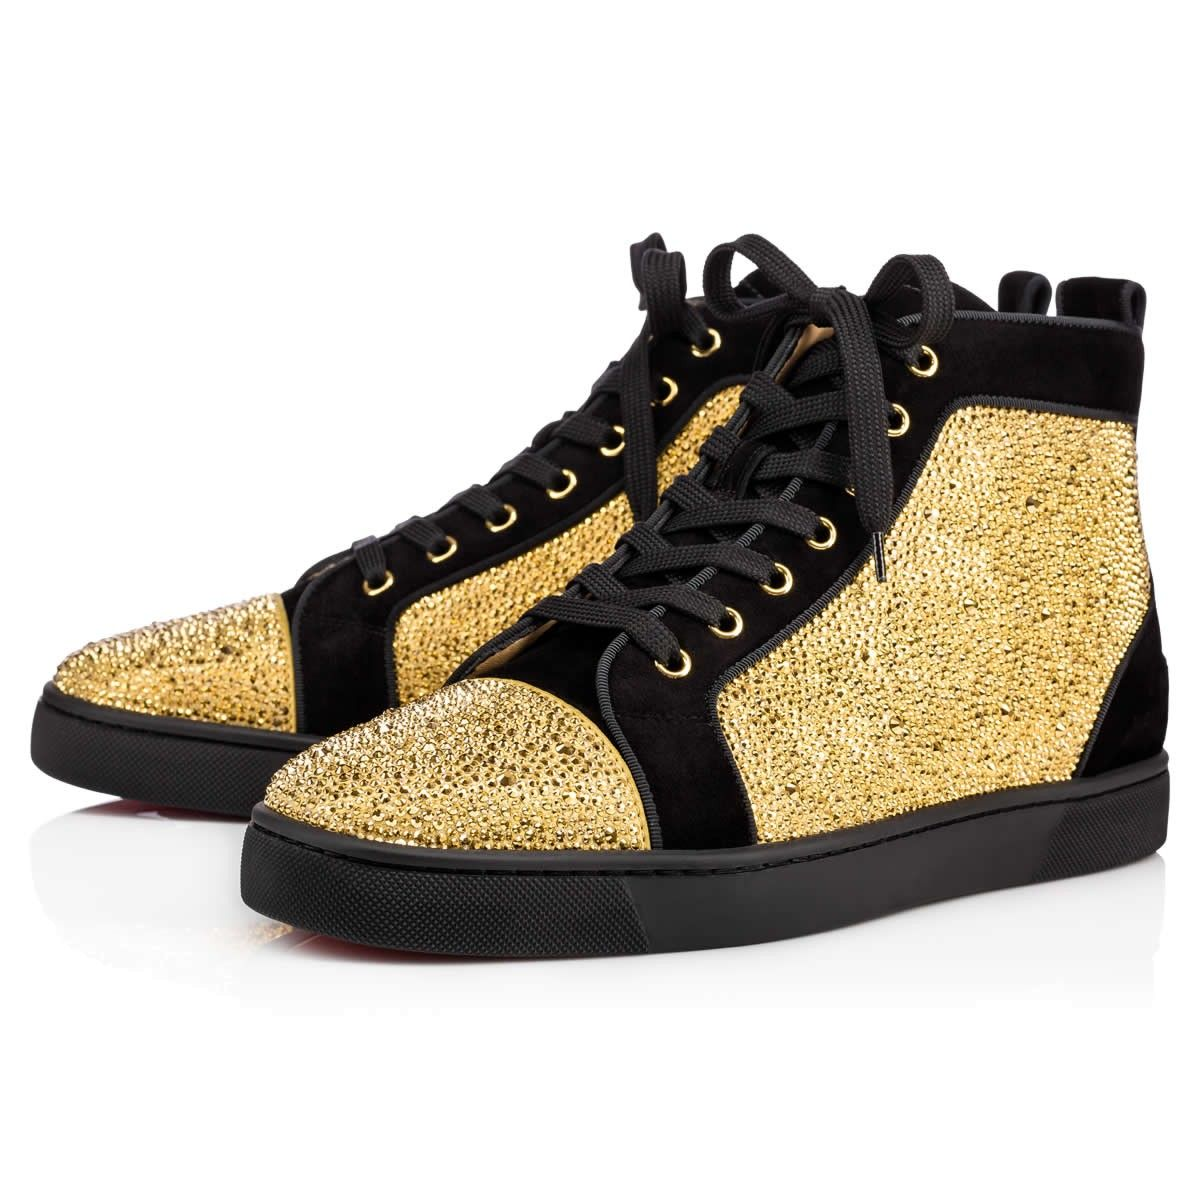 5d476ac648eb CHRISTIAN LOUBOUTIN Louis Strass Men S Flat Version Black Gold.   christianlouboutin  shoes